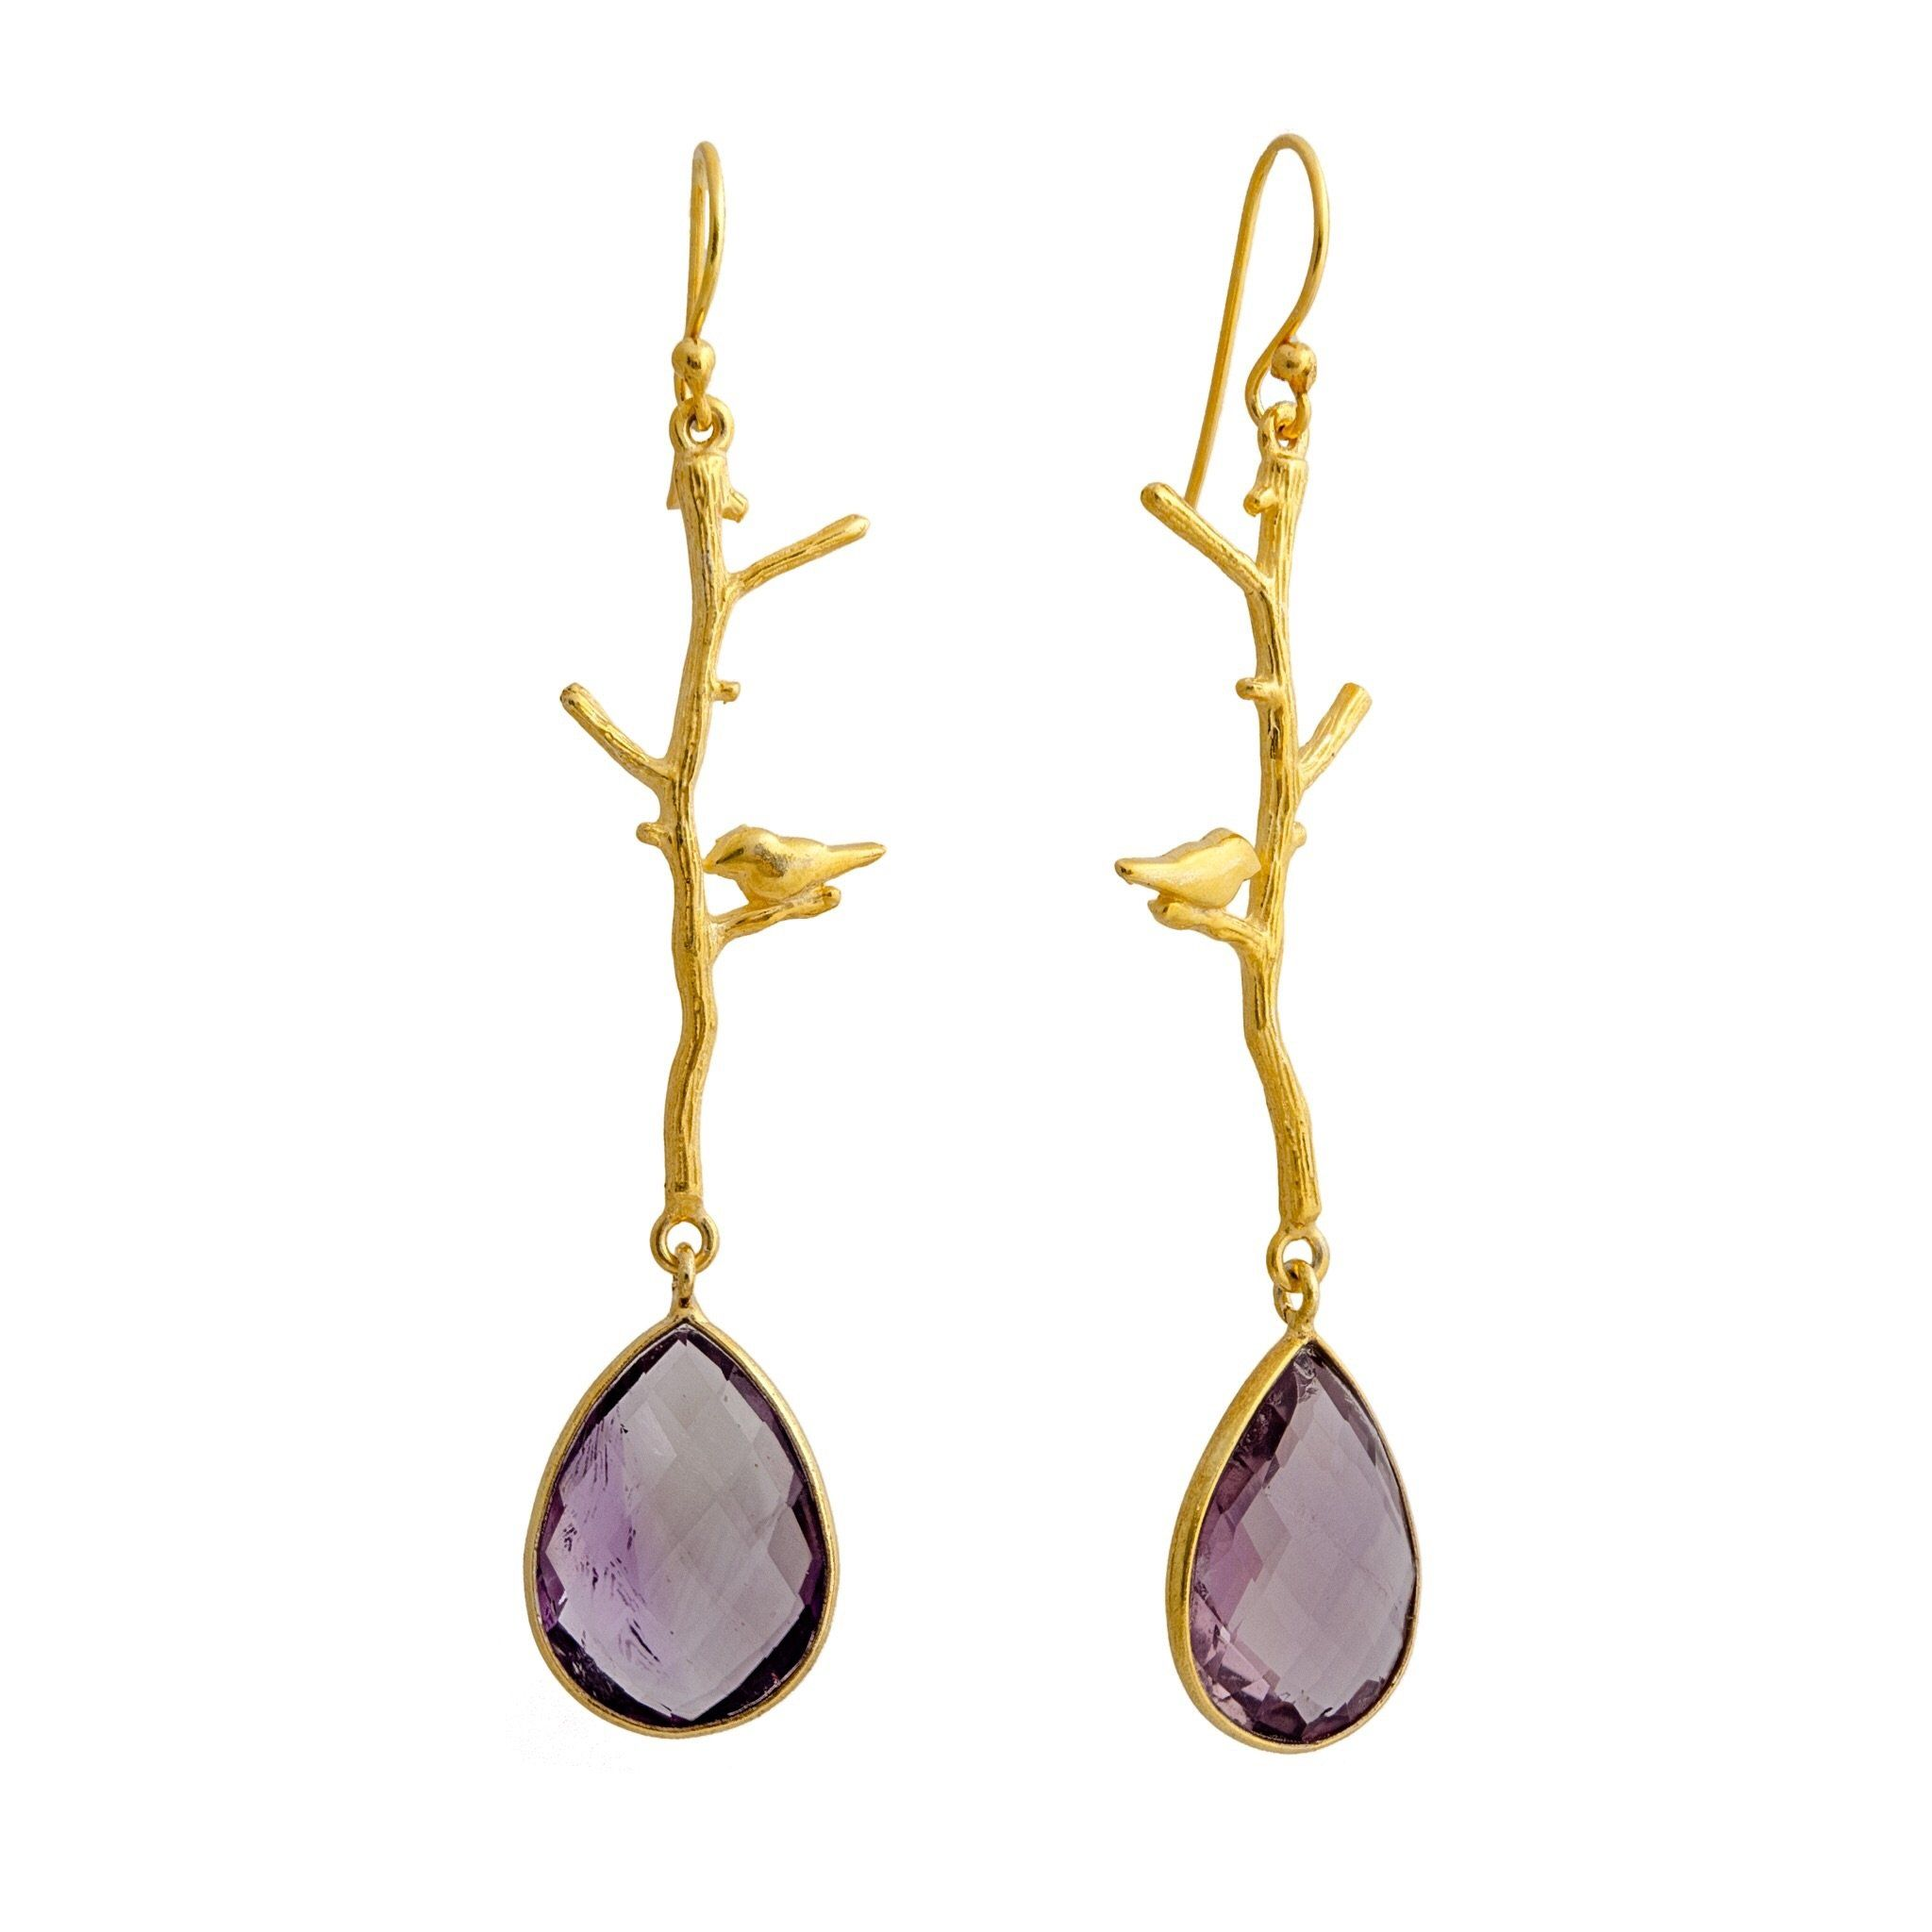 NOK amethyst earrings - MadamSiam